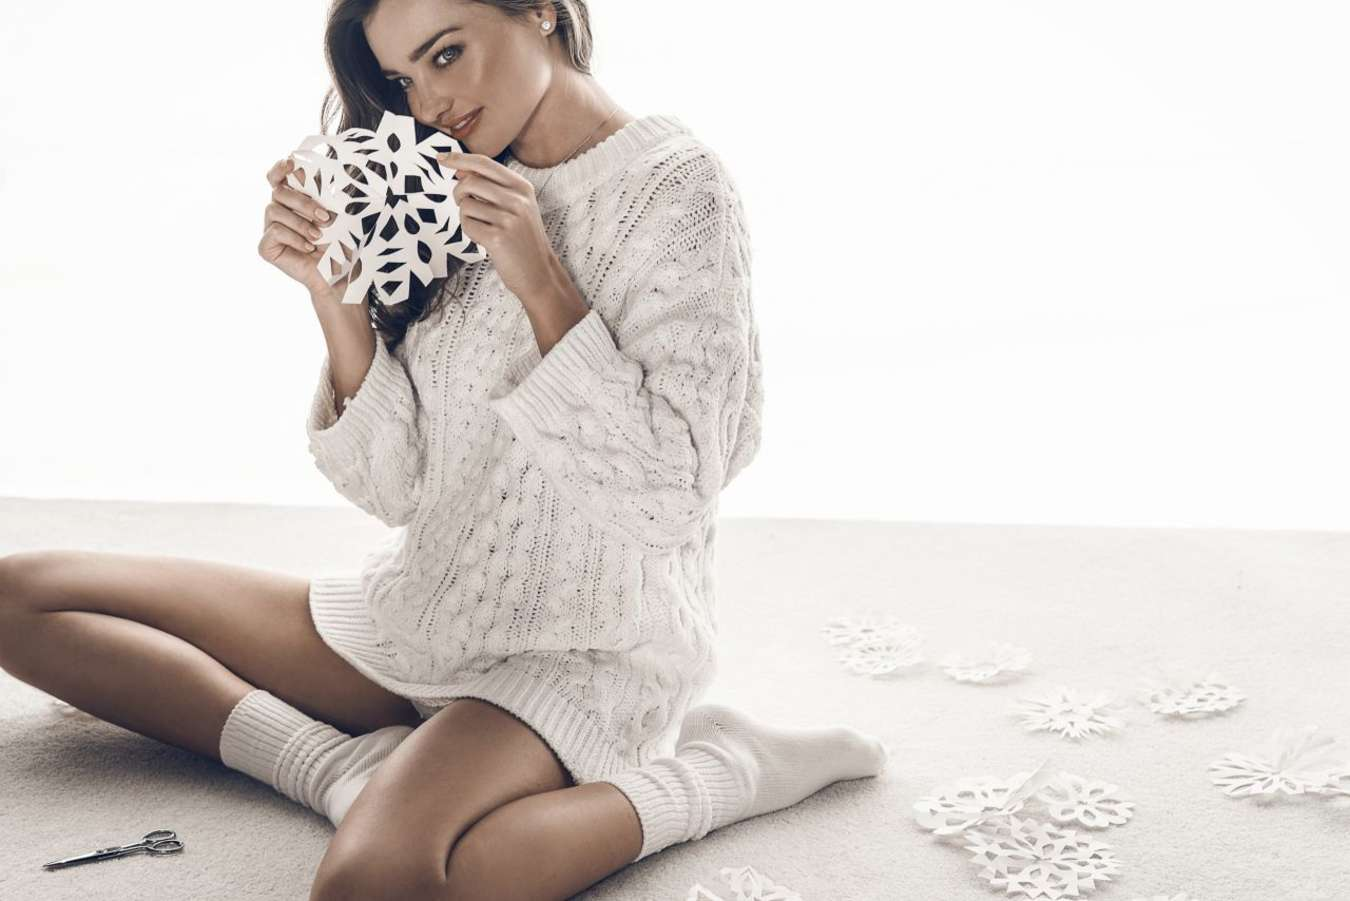 Miranda Kerr: Swarovski Holiday 2015 Collection -03 - GotCeleb Miranda Kerr Collection